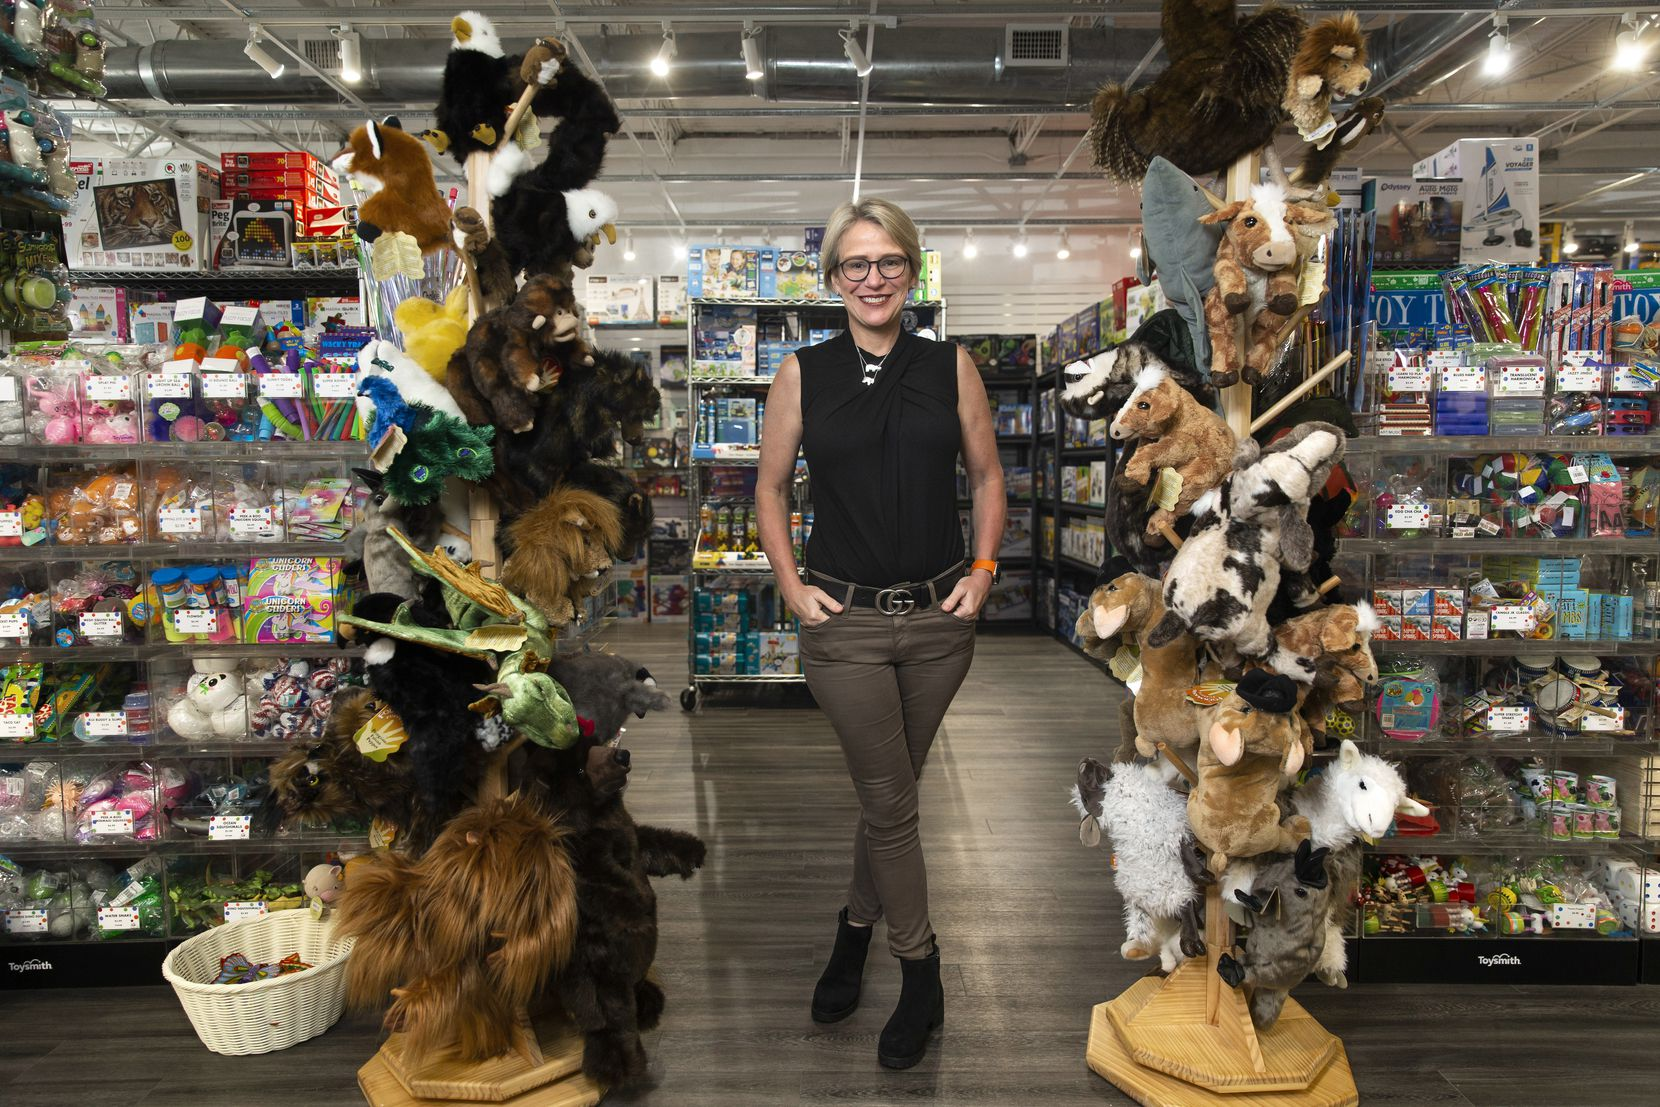 Owner Candace Williams poses for a portrait at The Toy Maven. The retailer just moved back into her original location after extensive repairs.